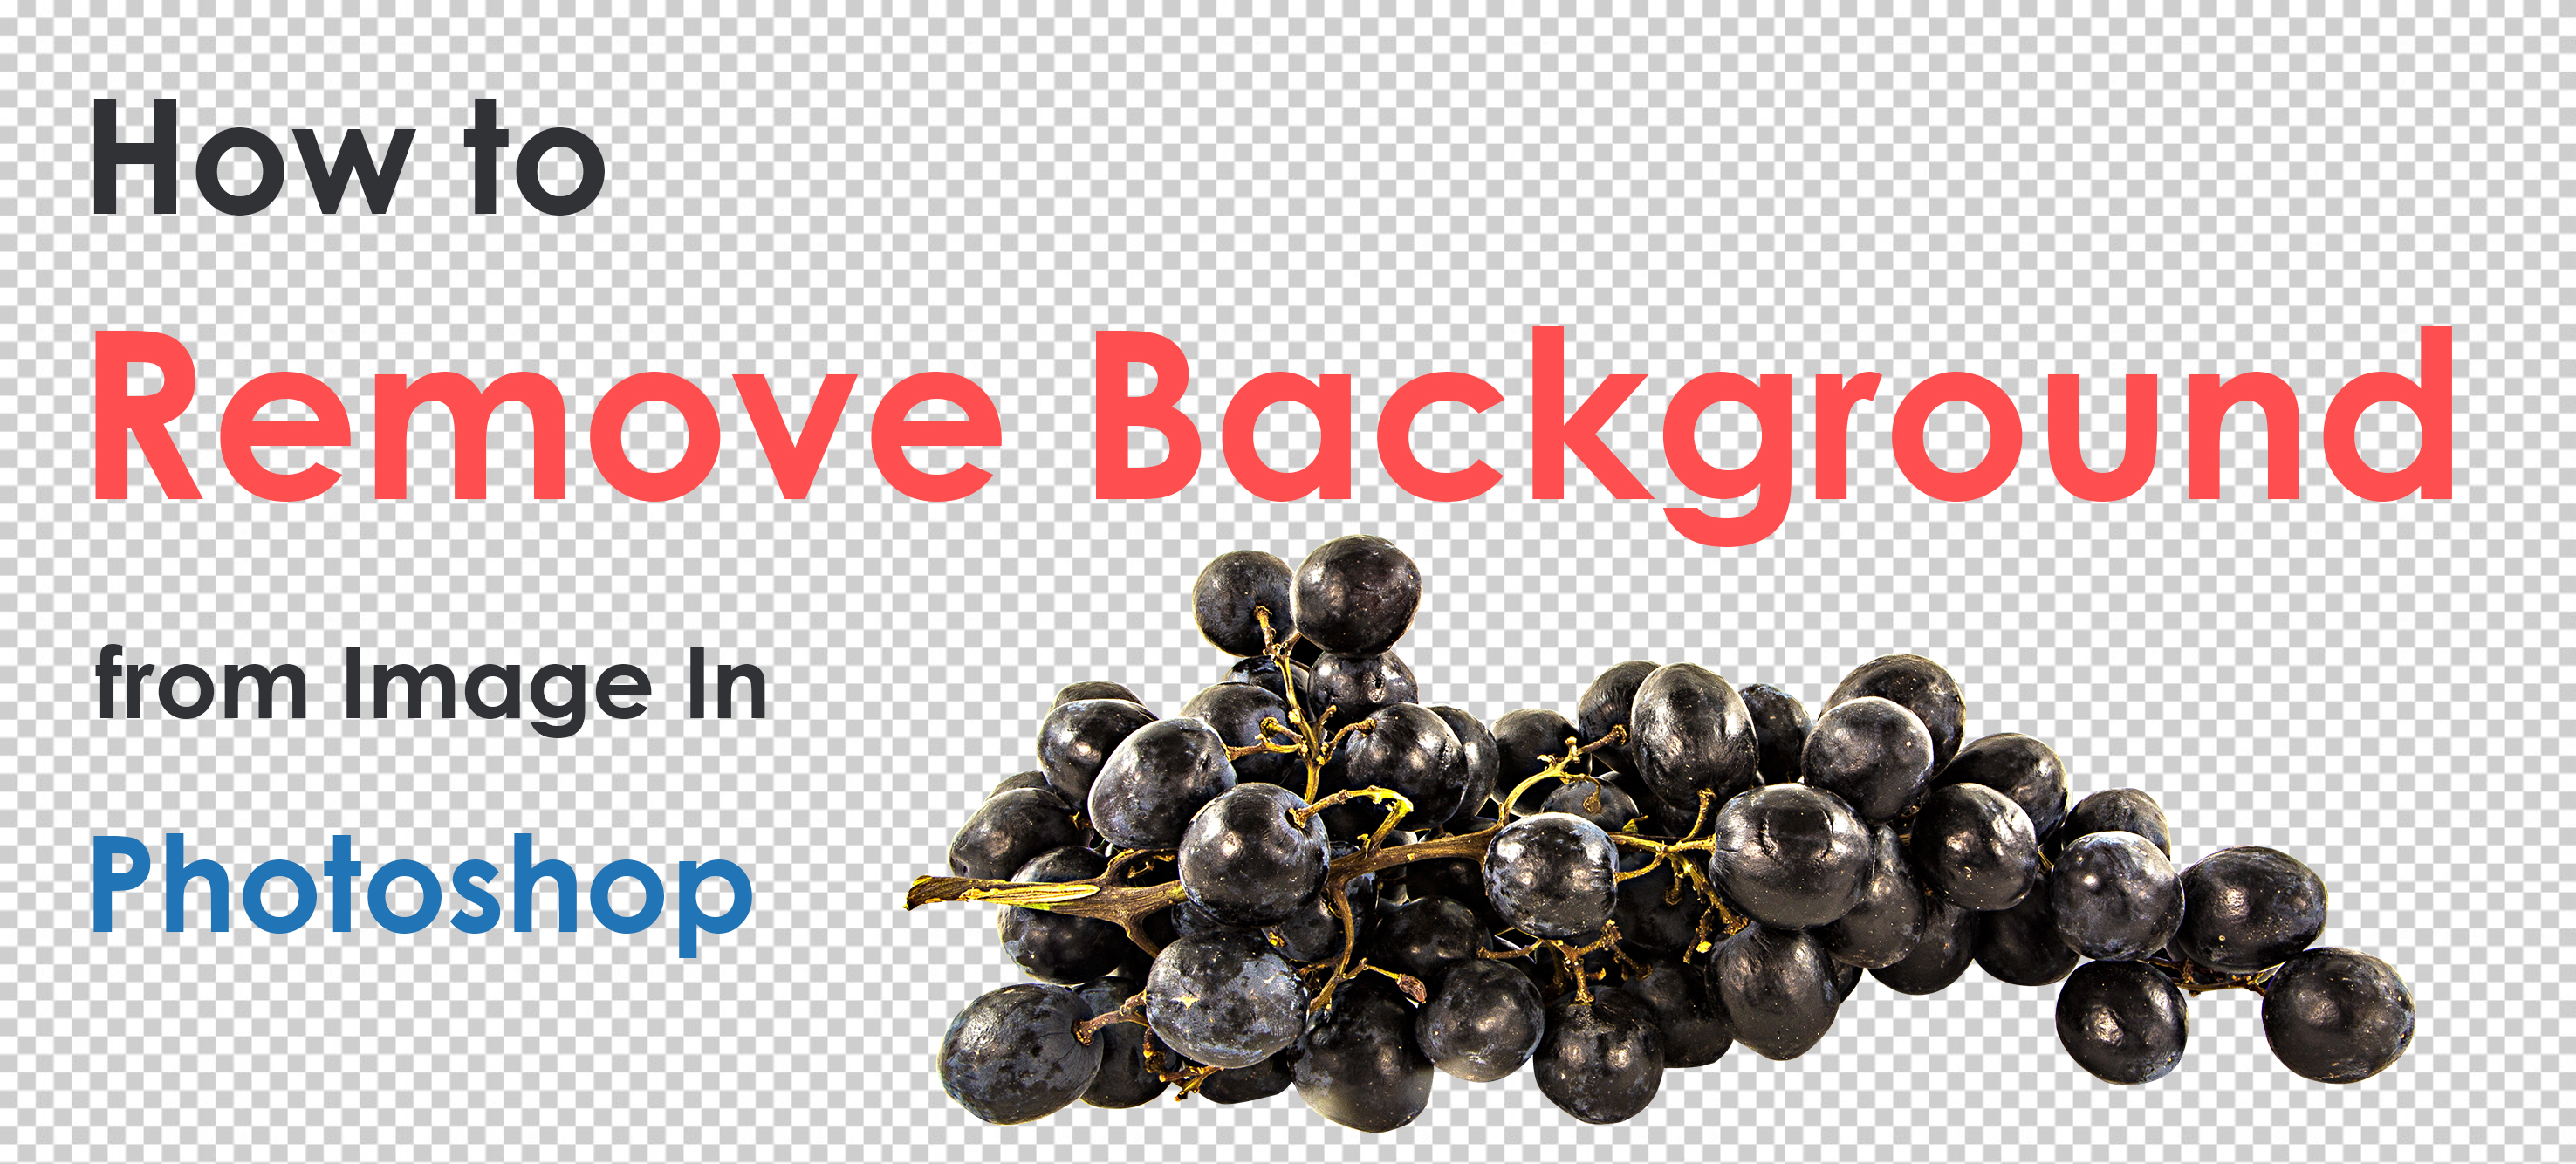 How to Remove Background from Image In Photoshop